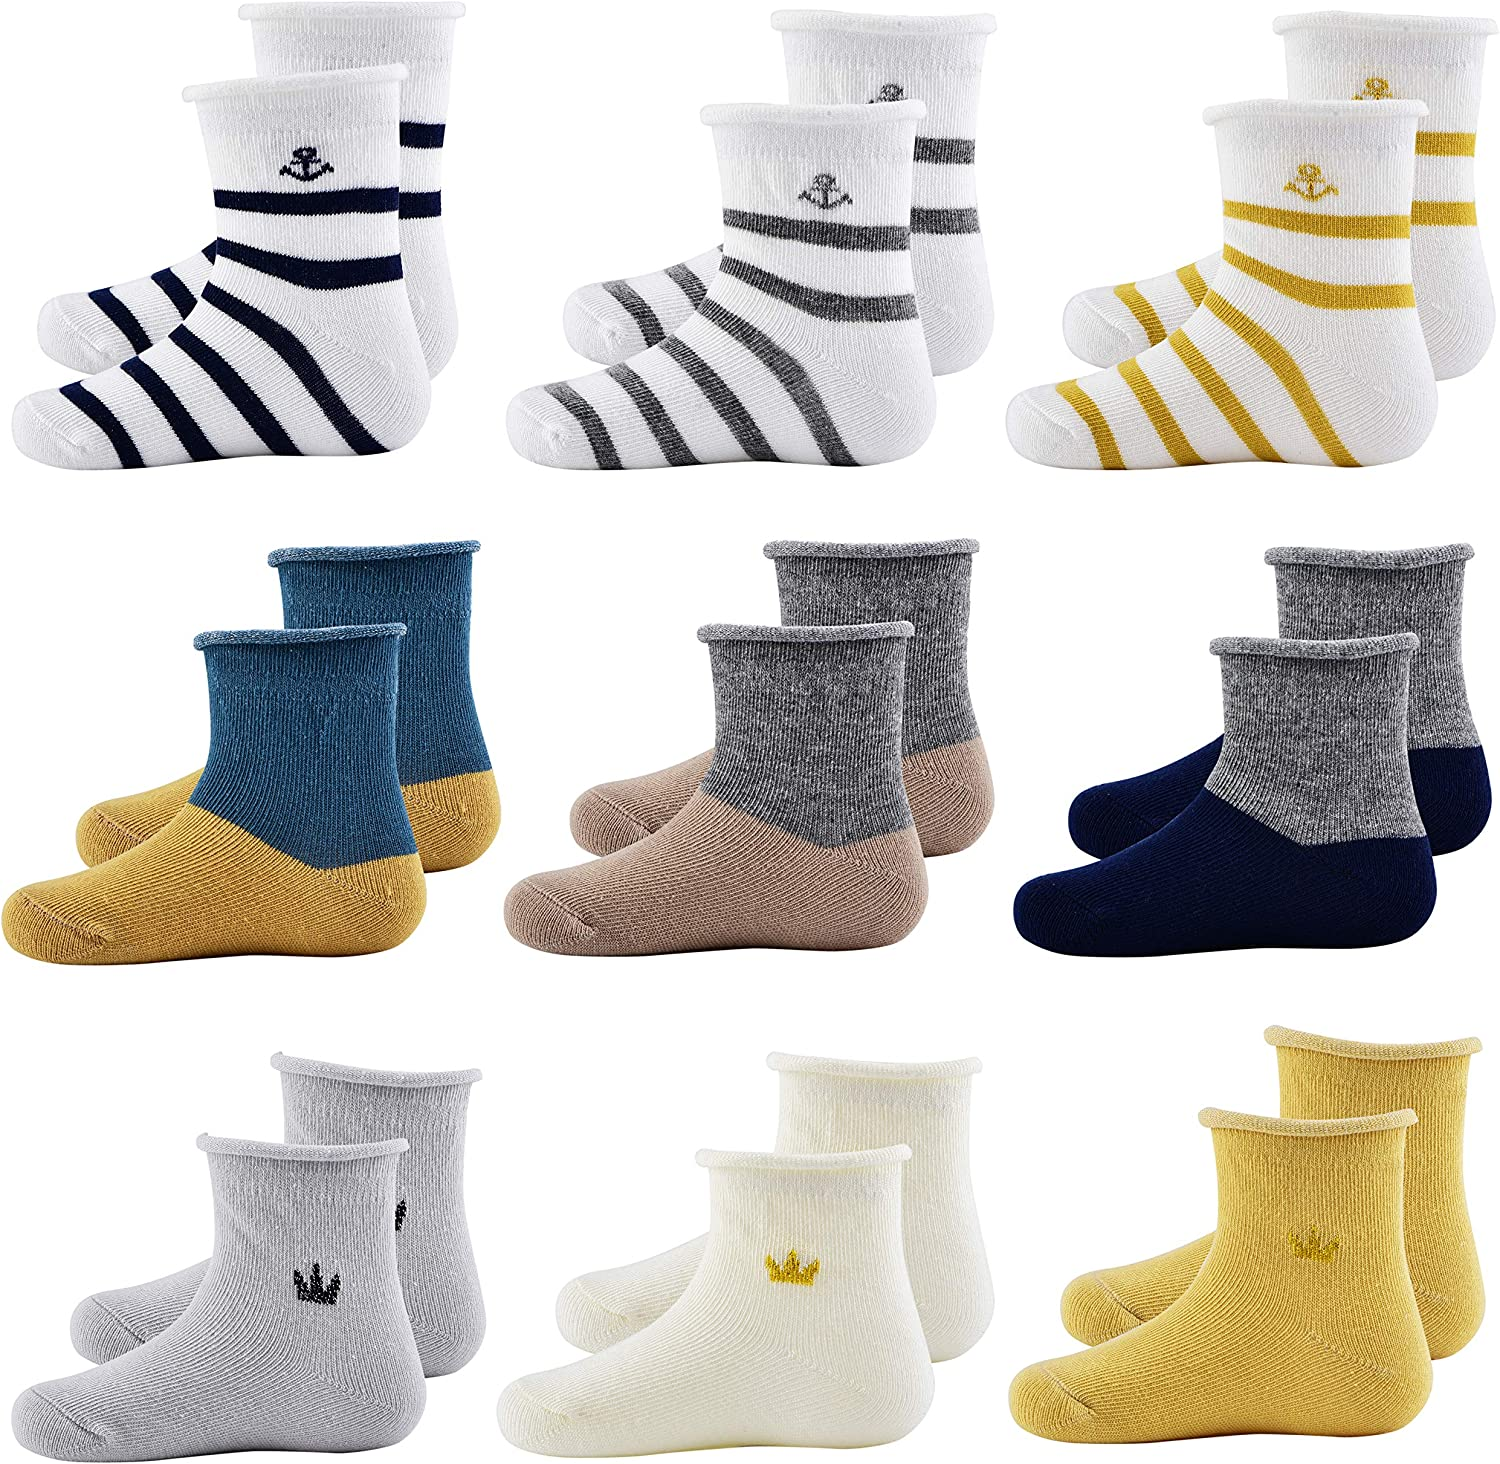 Baby Boys Girls Ankle Socks Soft Cotton Socks Toddler Crew Socks Baby Socks